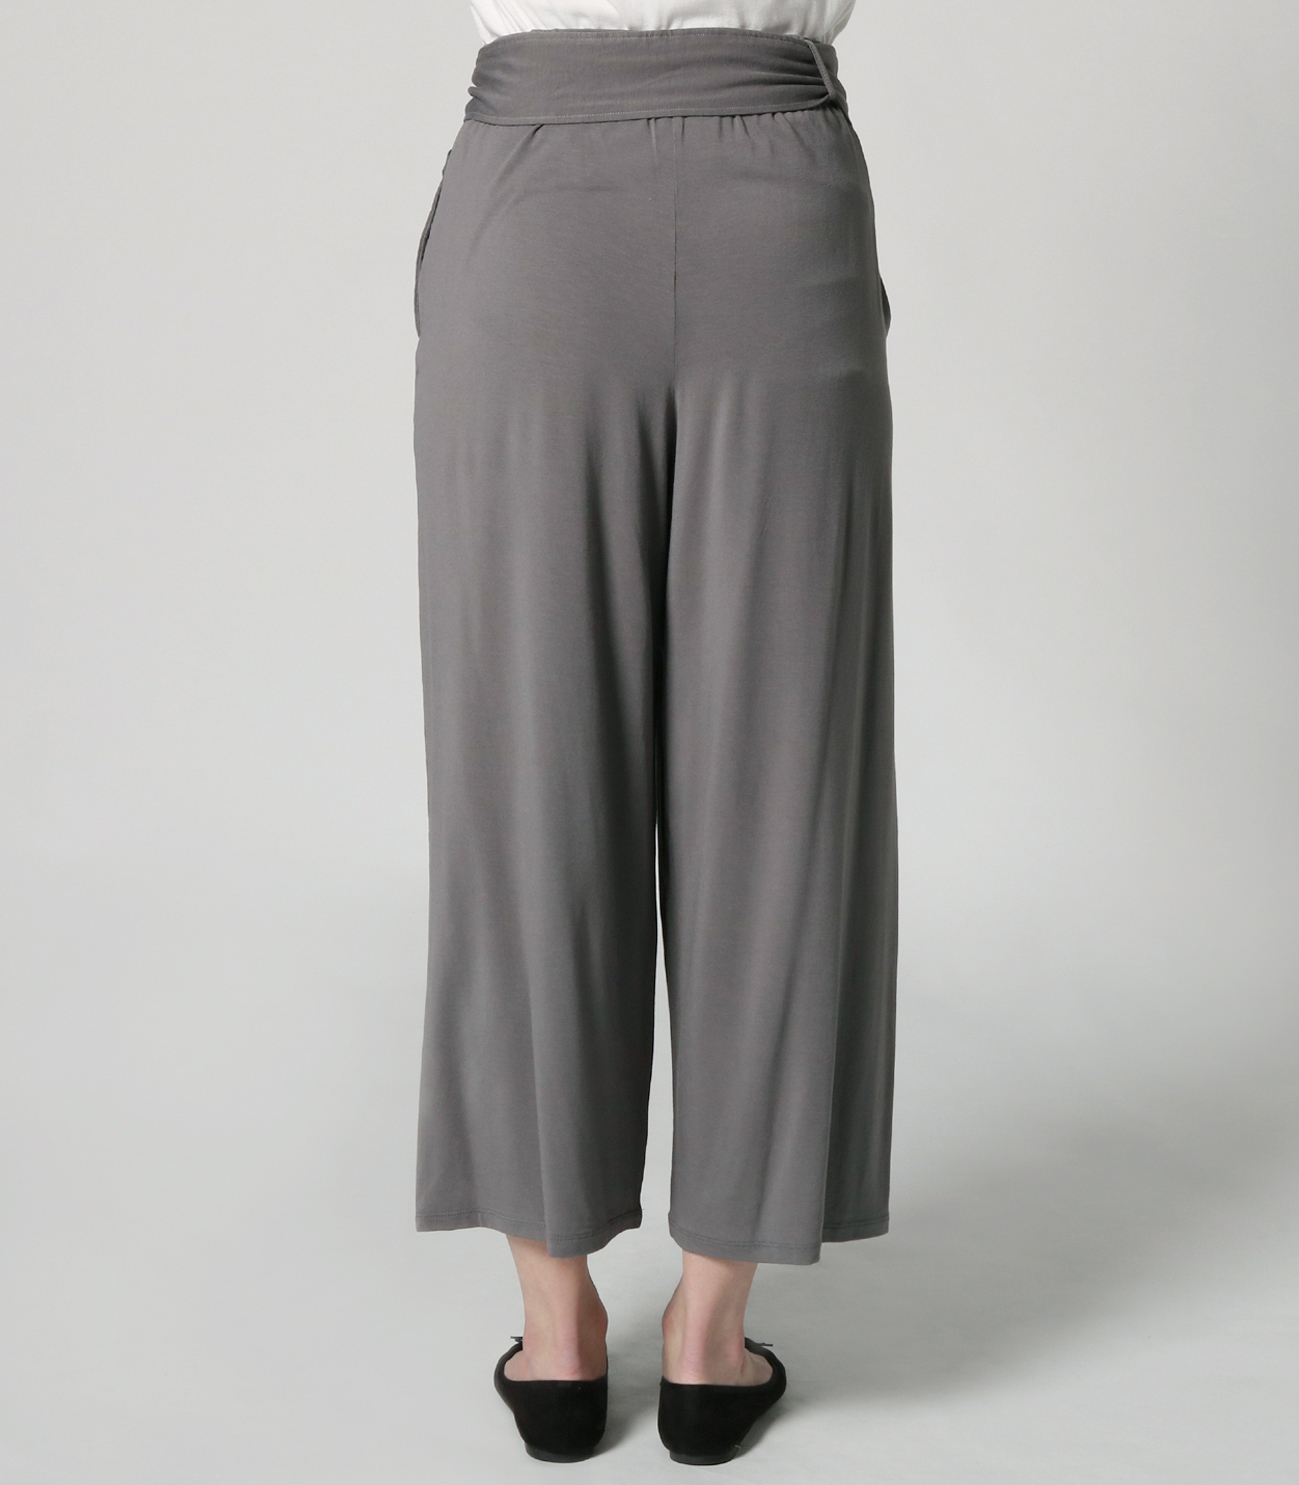 travel line tuck wide pant 詳細画像 shade 4